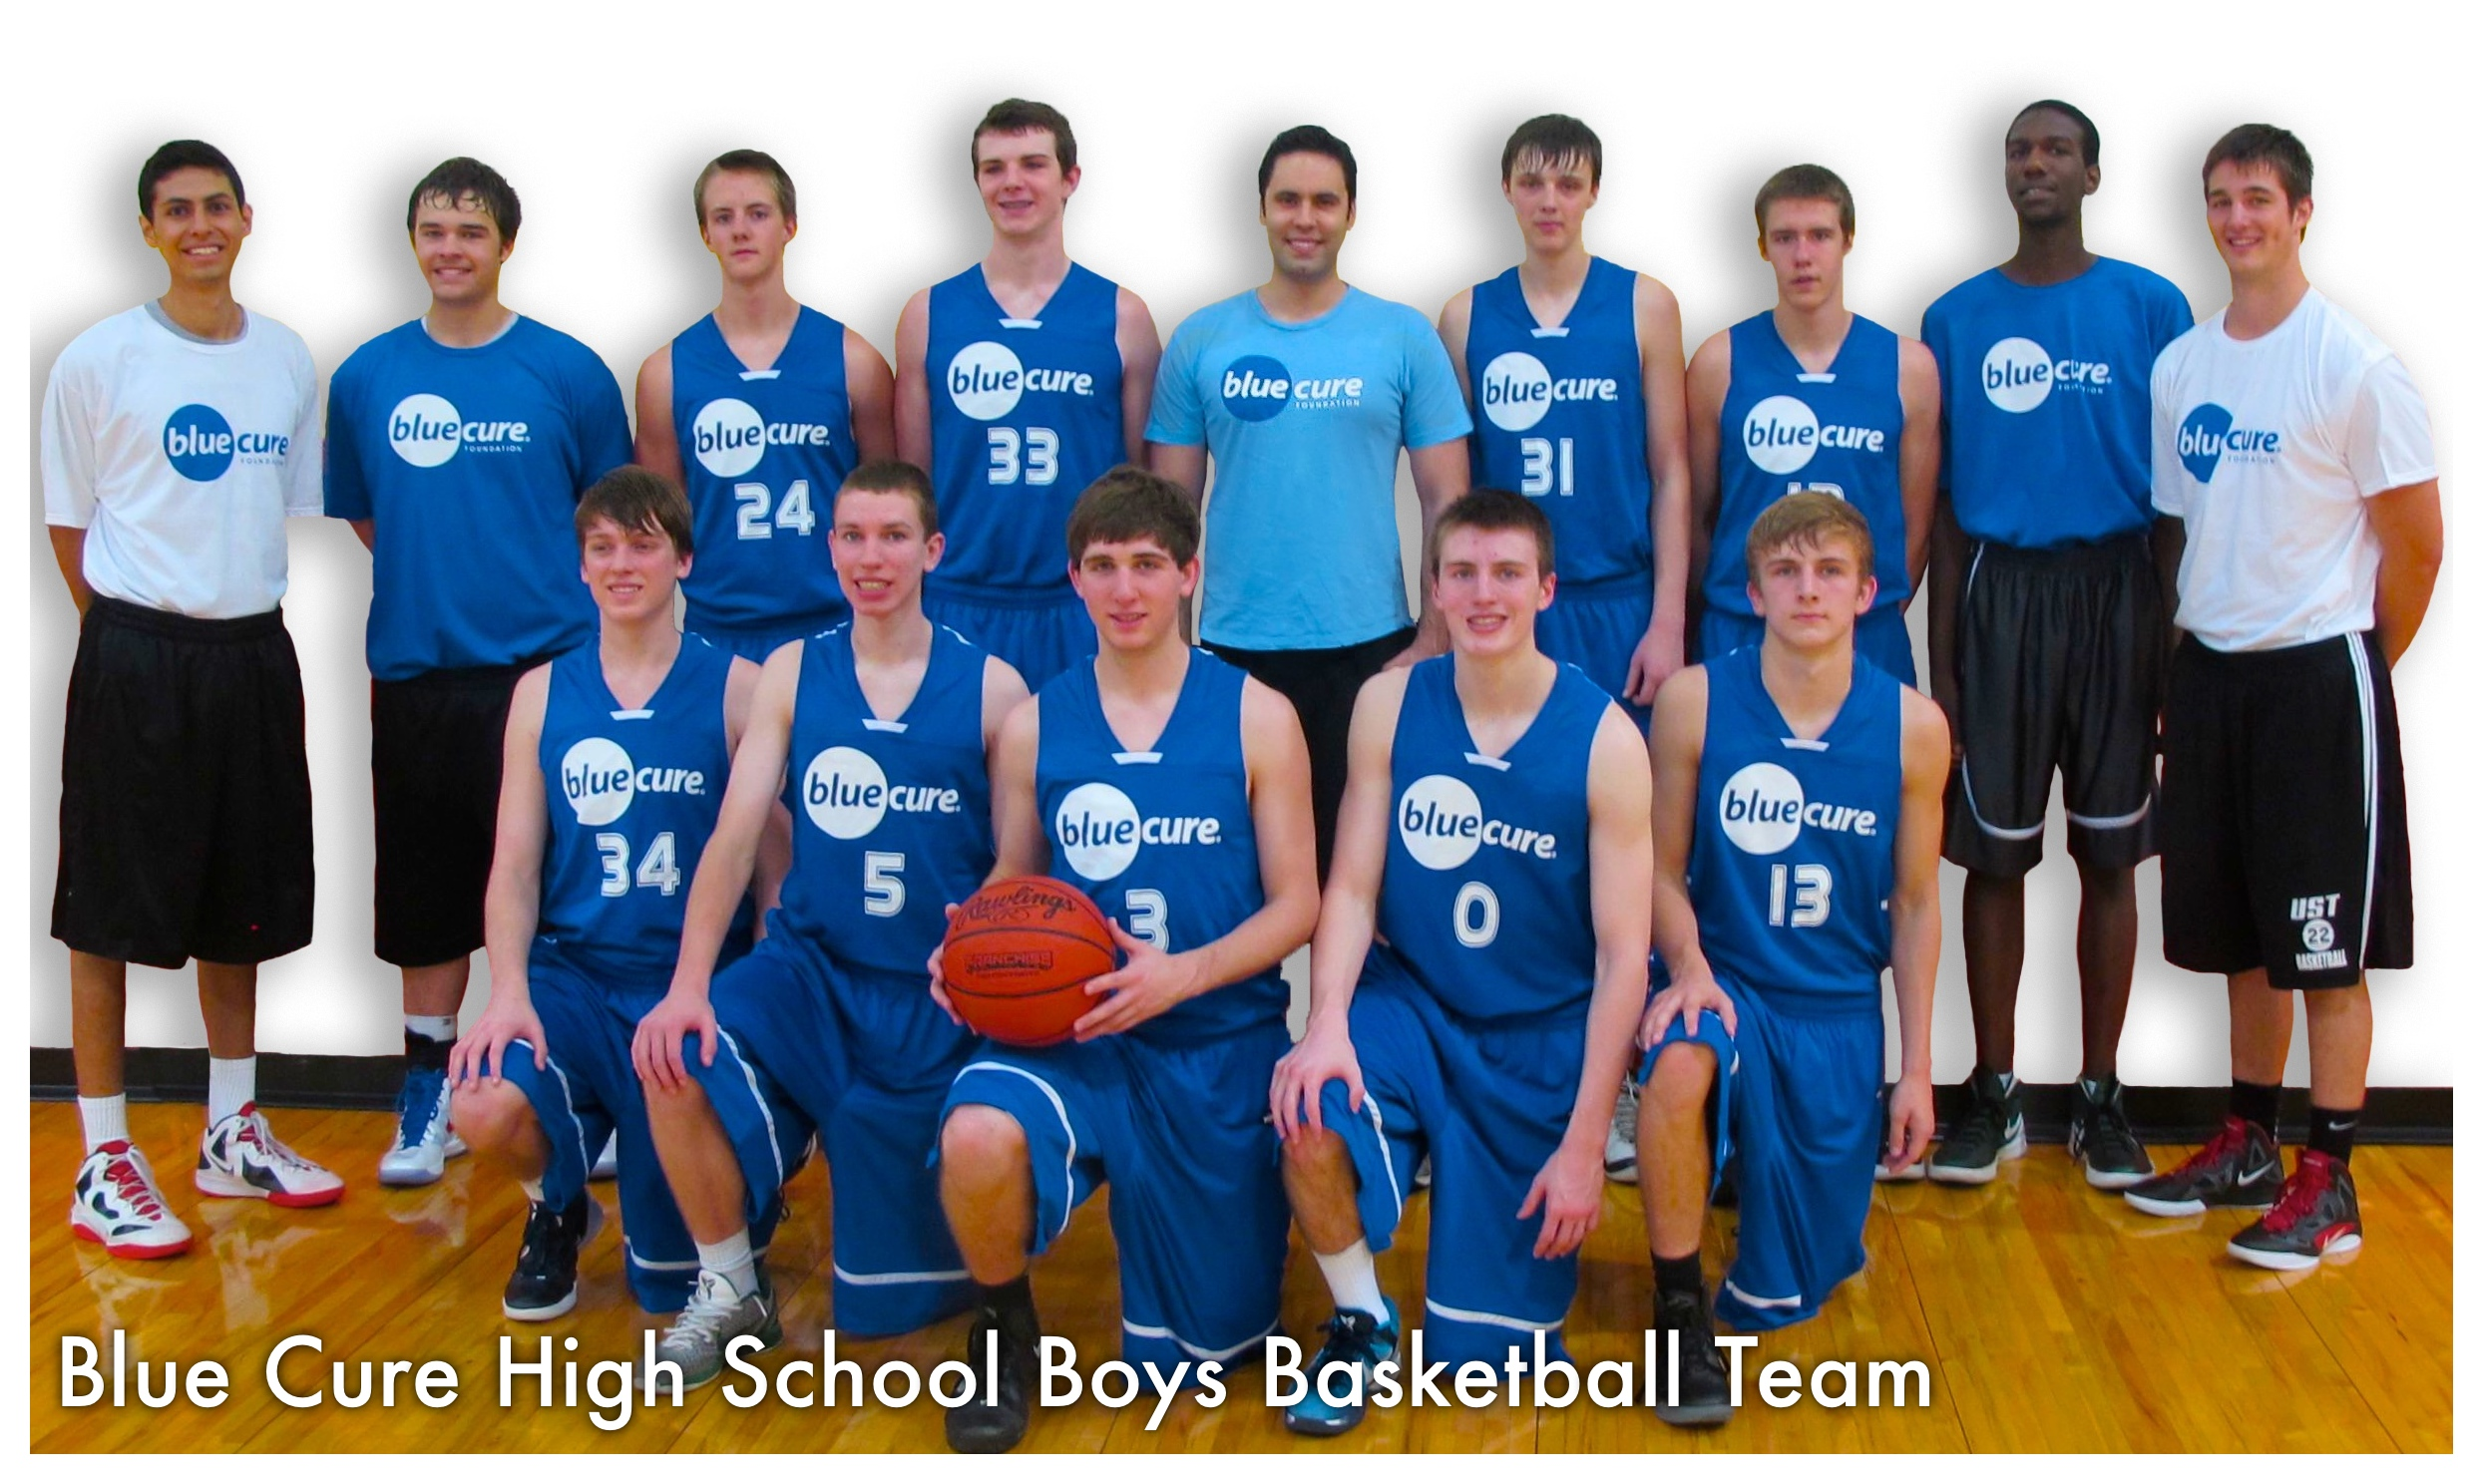 2012-04-09-BlueCureHighSchoolBoys2Huffington.jpg